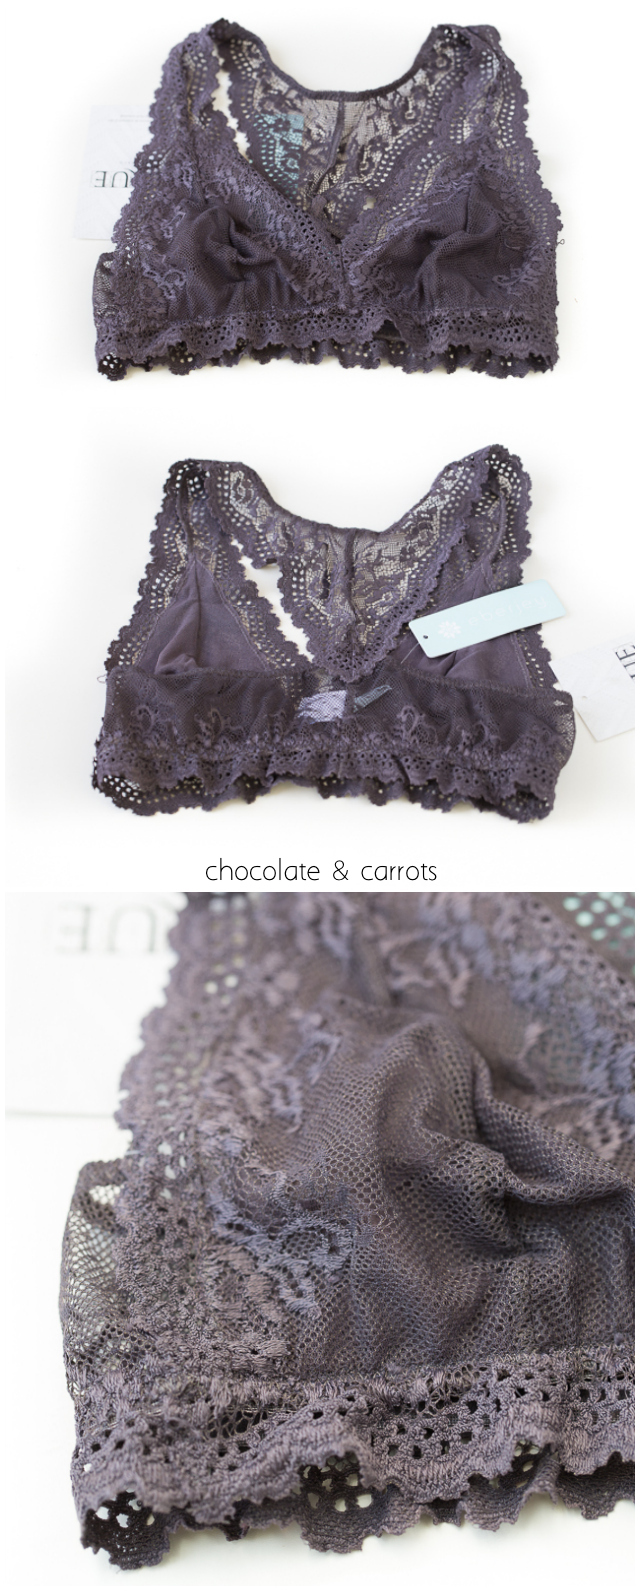 COLETTE True&Co Review | chocolateandcarrots.com